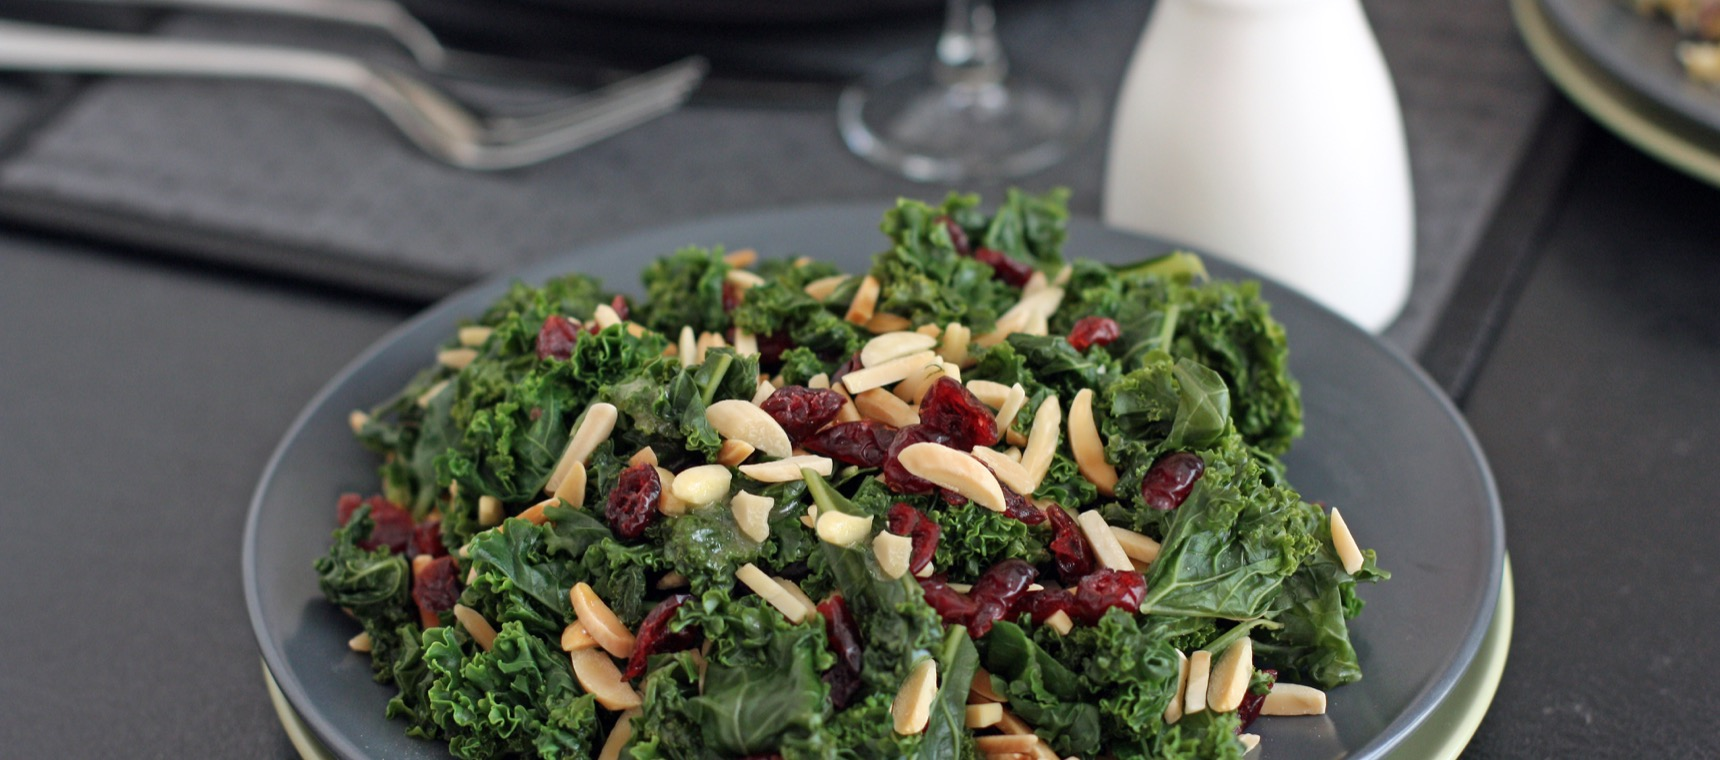 Kale, Cranberry and Almond Salad